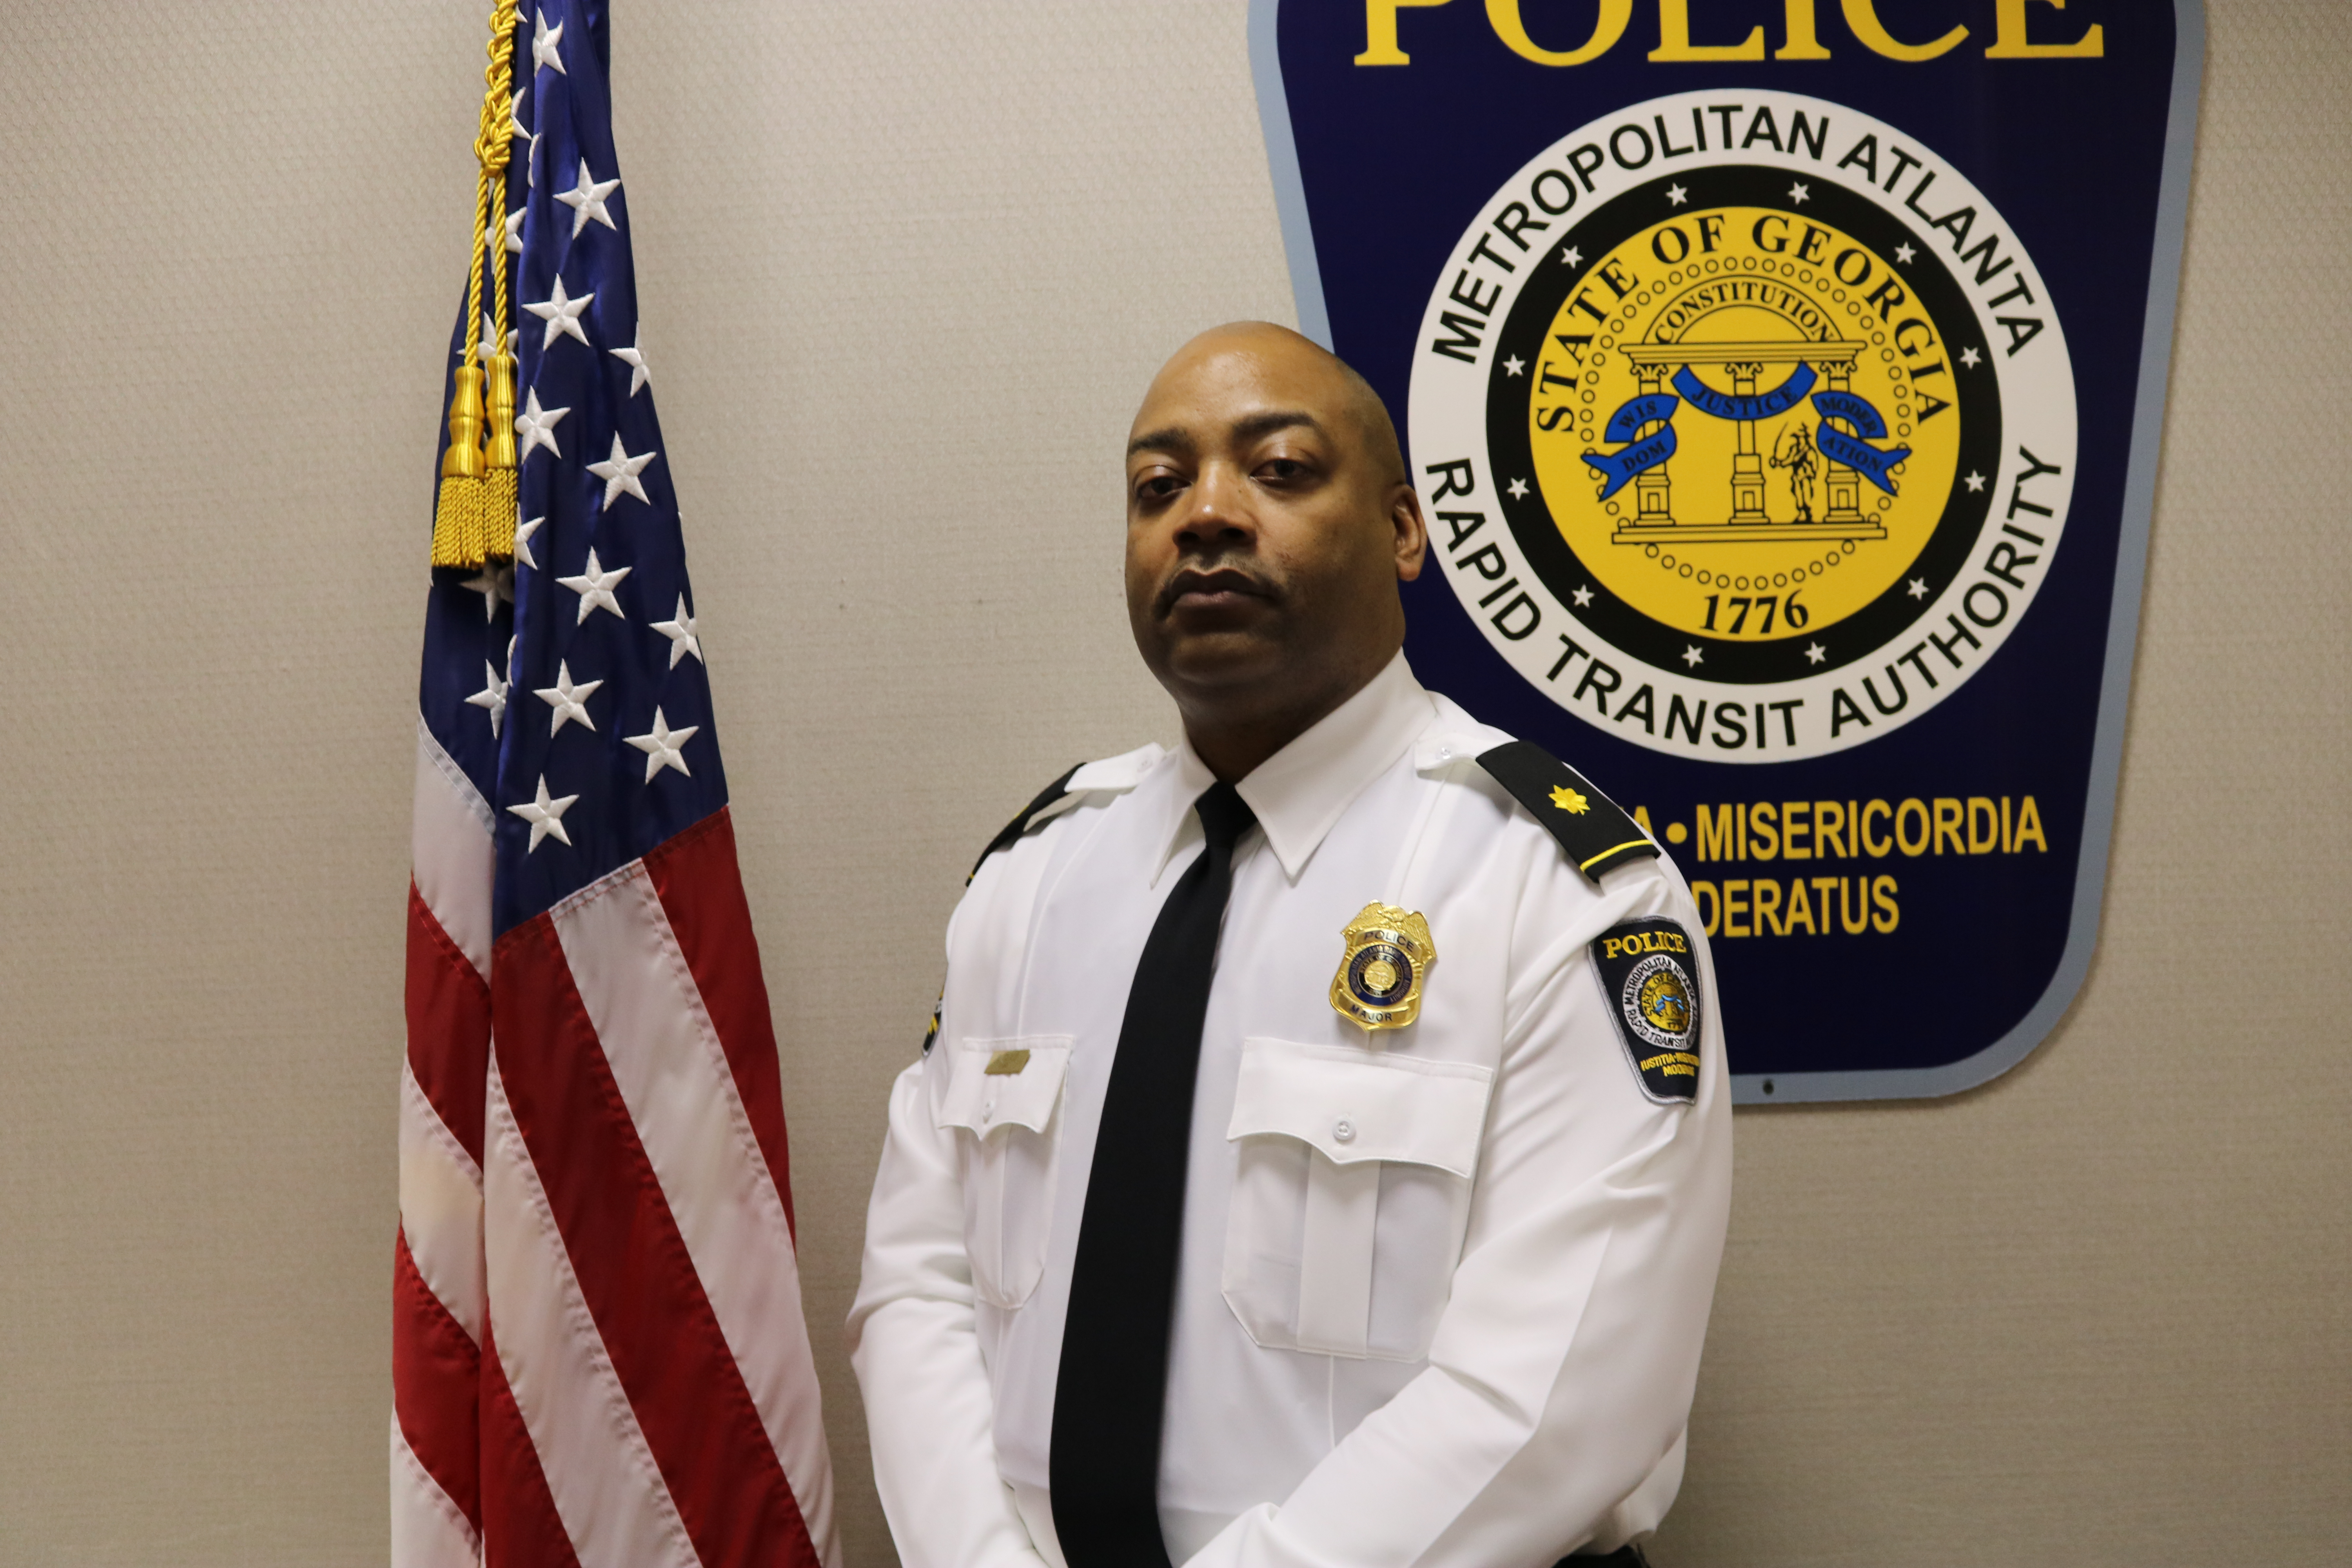 MPD Major Ernest Cloud